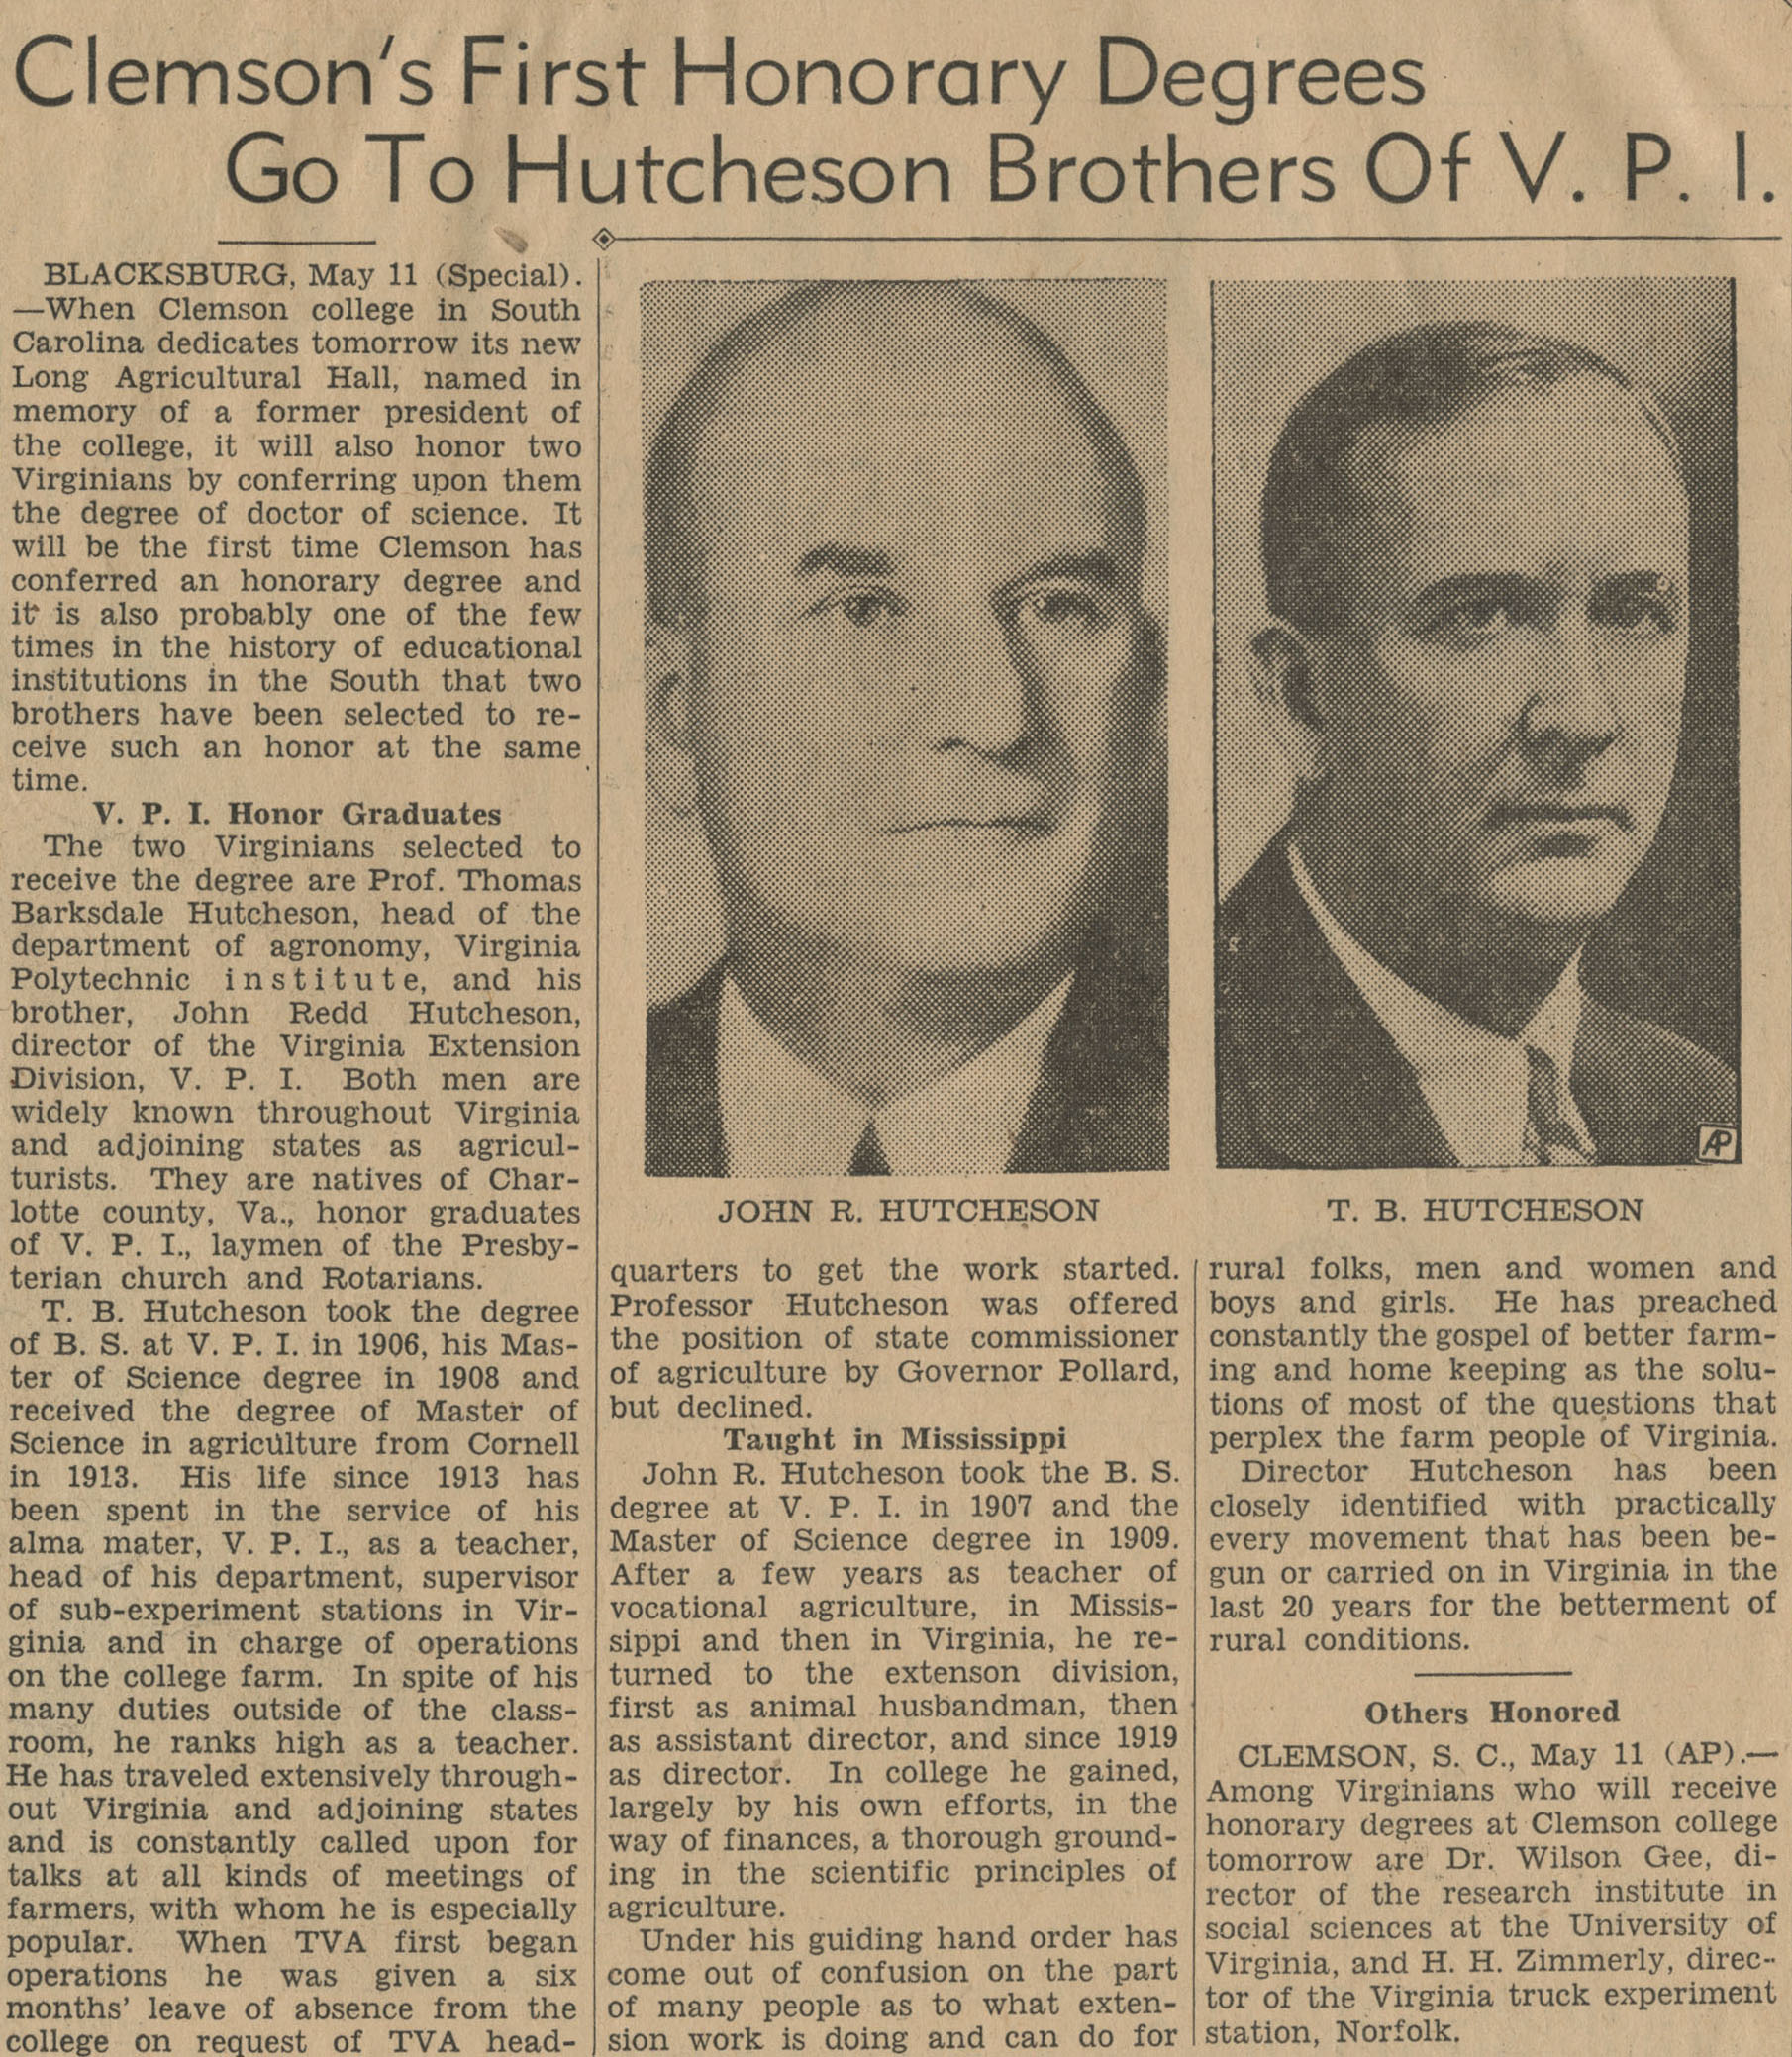 """Clemson's First Honorary Degrees Go to Hutcheson Brothers of V.P.I."""